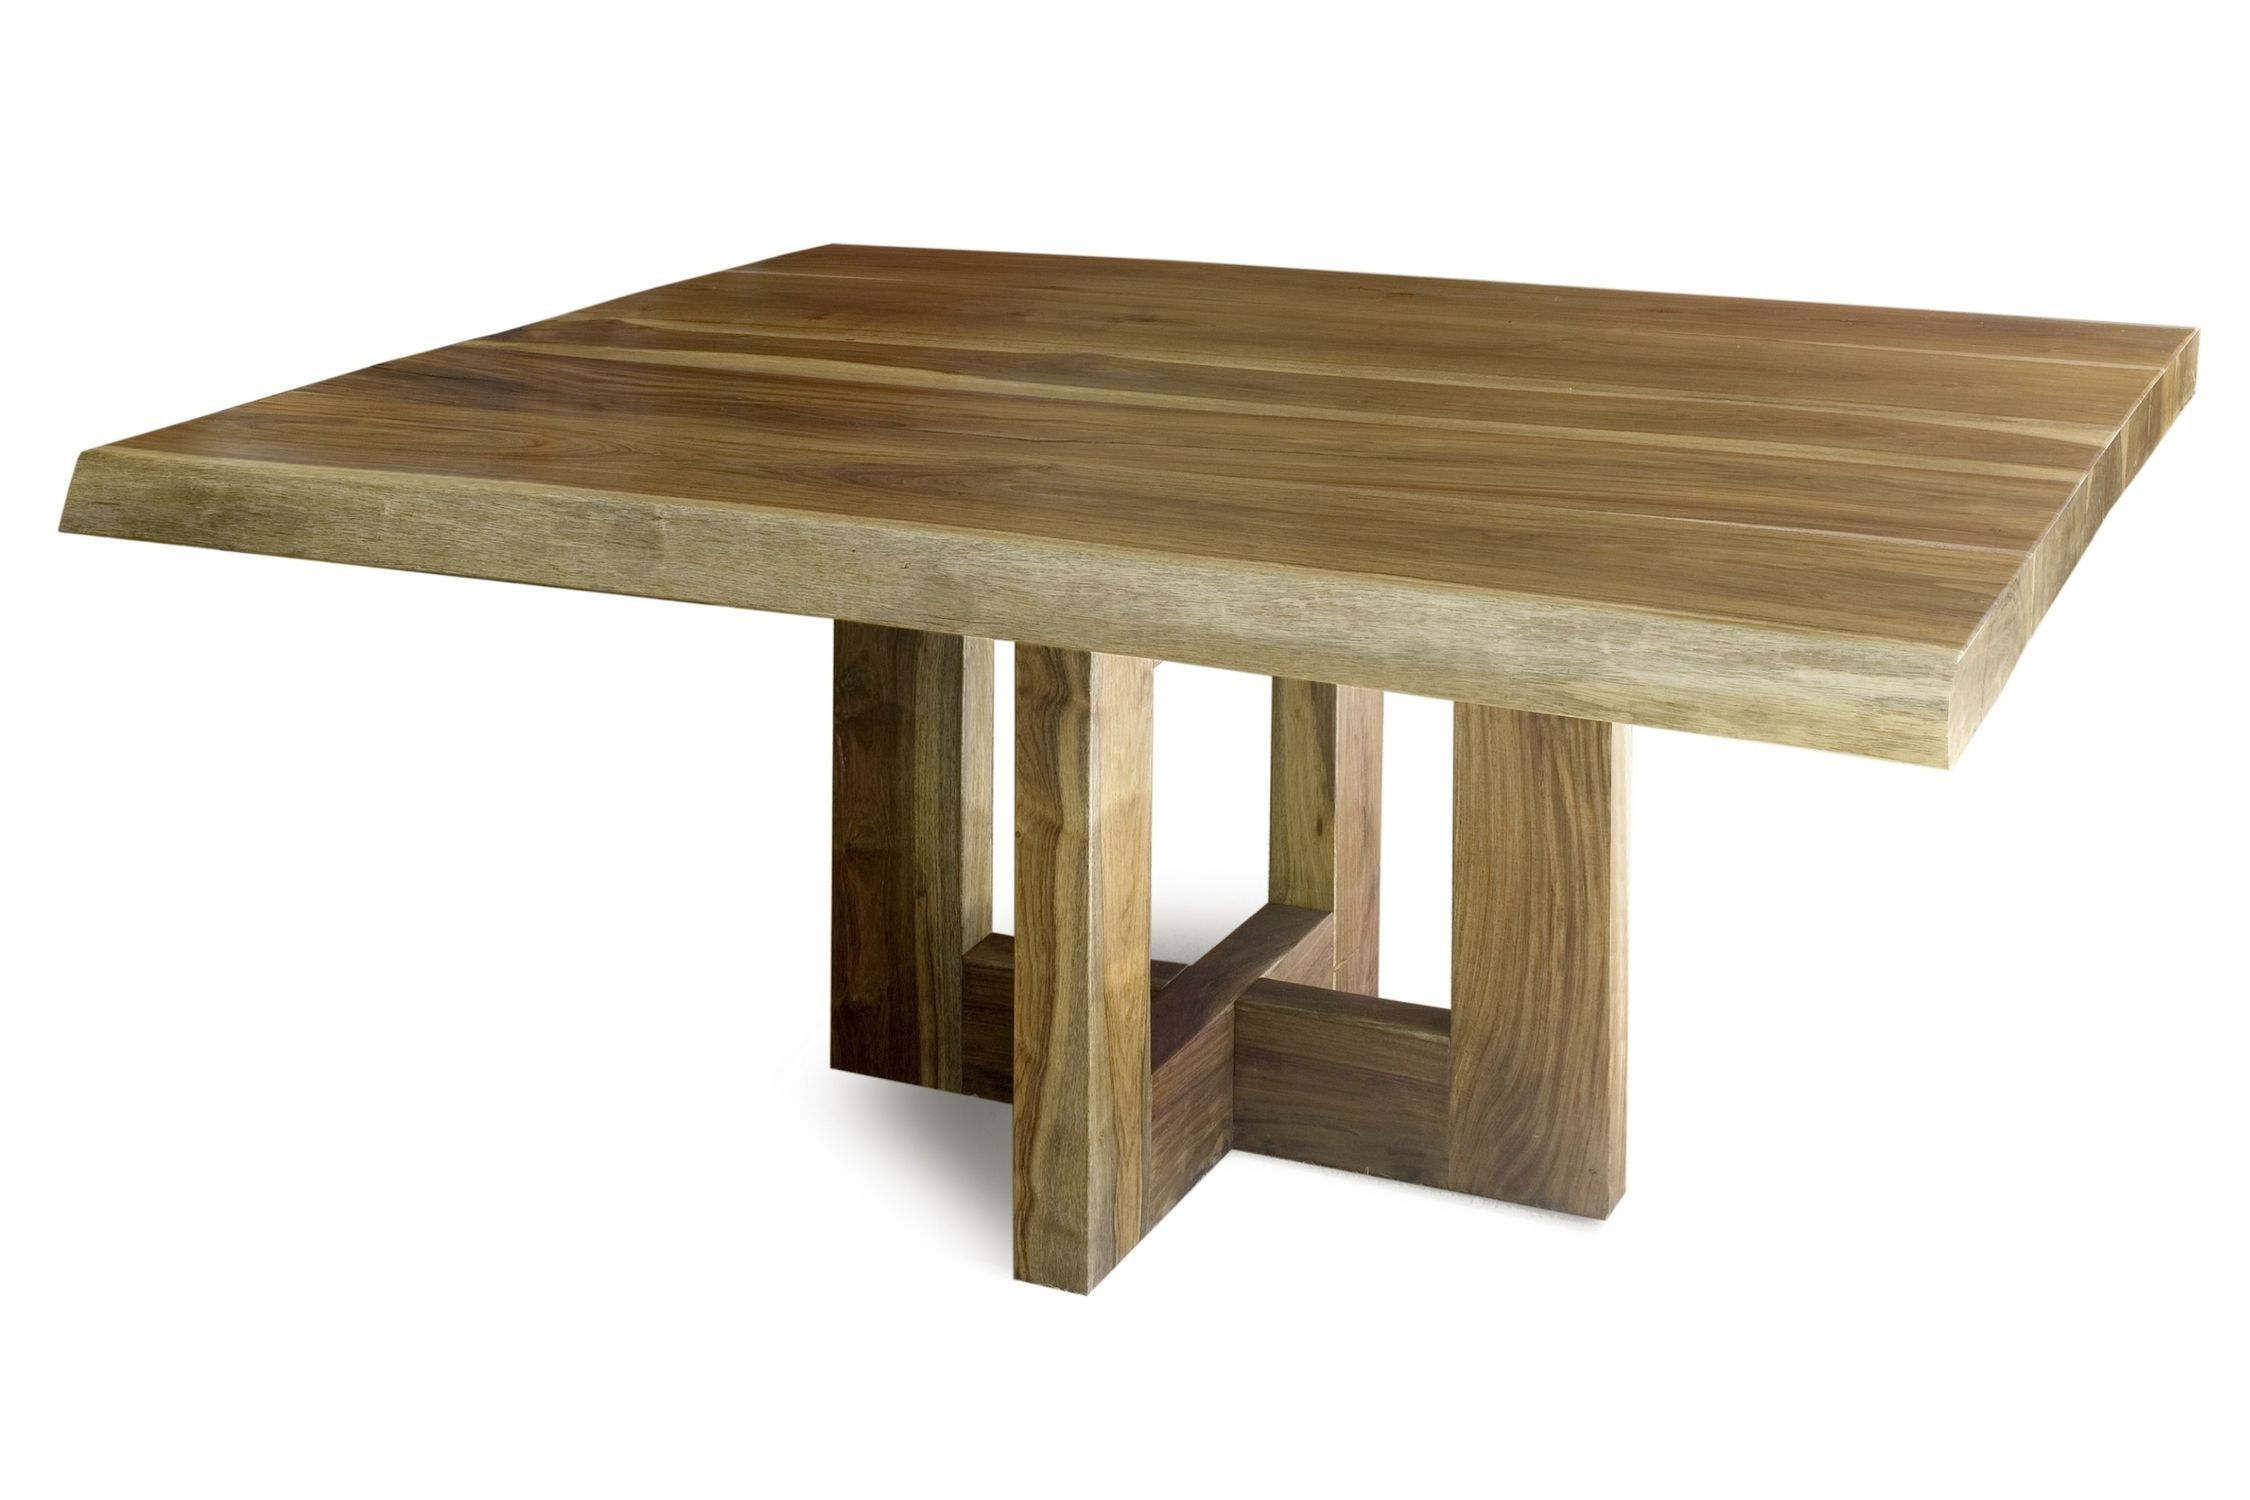 Contemporary rectangle unfinished reclaimed wood table for for Dinner table wood